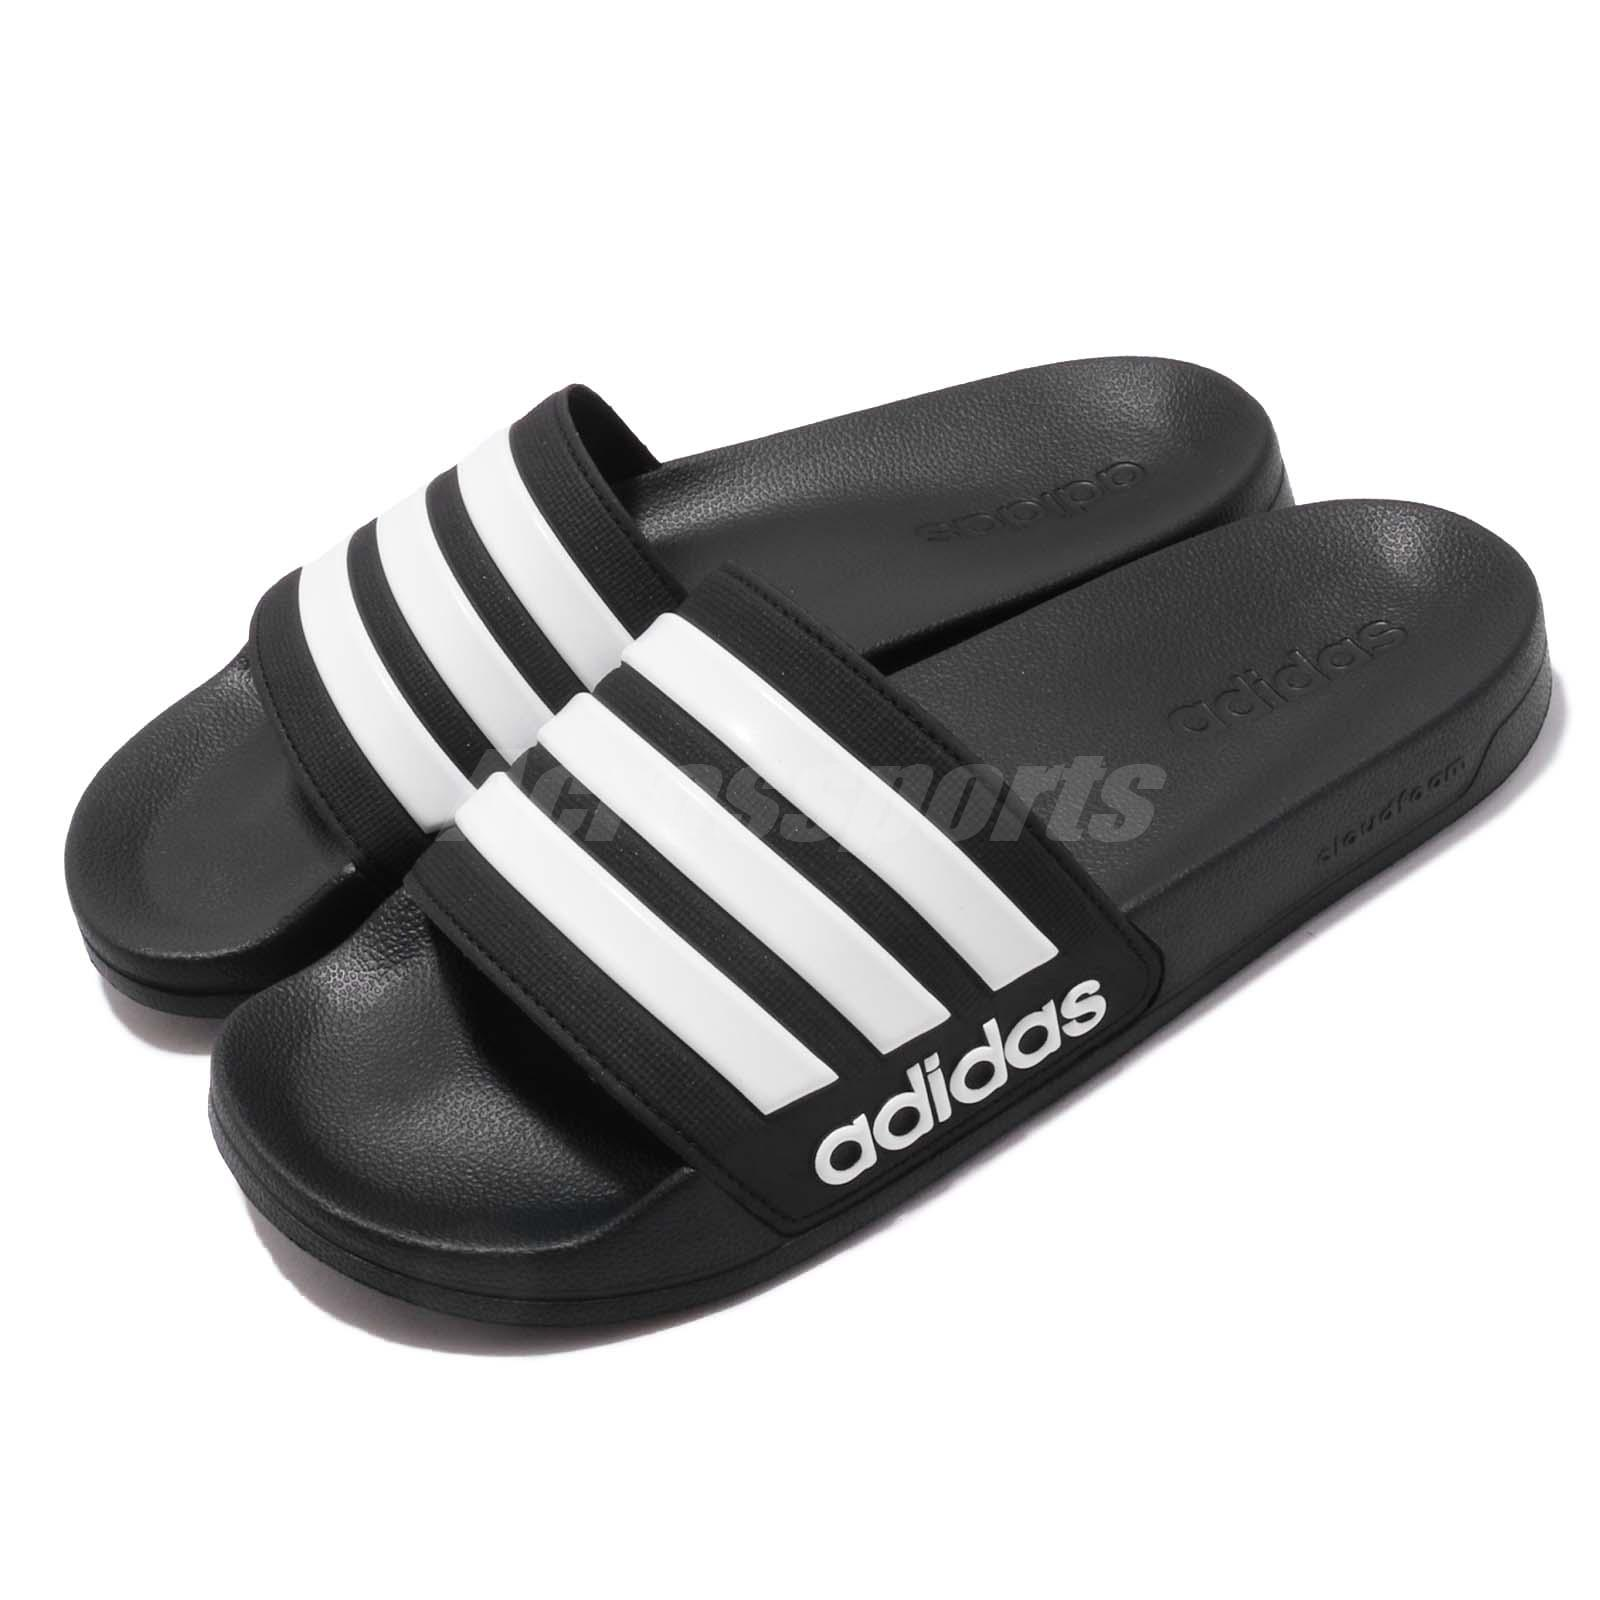 bfbbe53bb4c3 Details about adidas Adilette Shower Black White Men Sports Sandals Slides  Slippers AQ1701